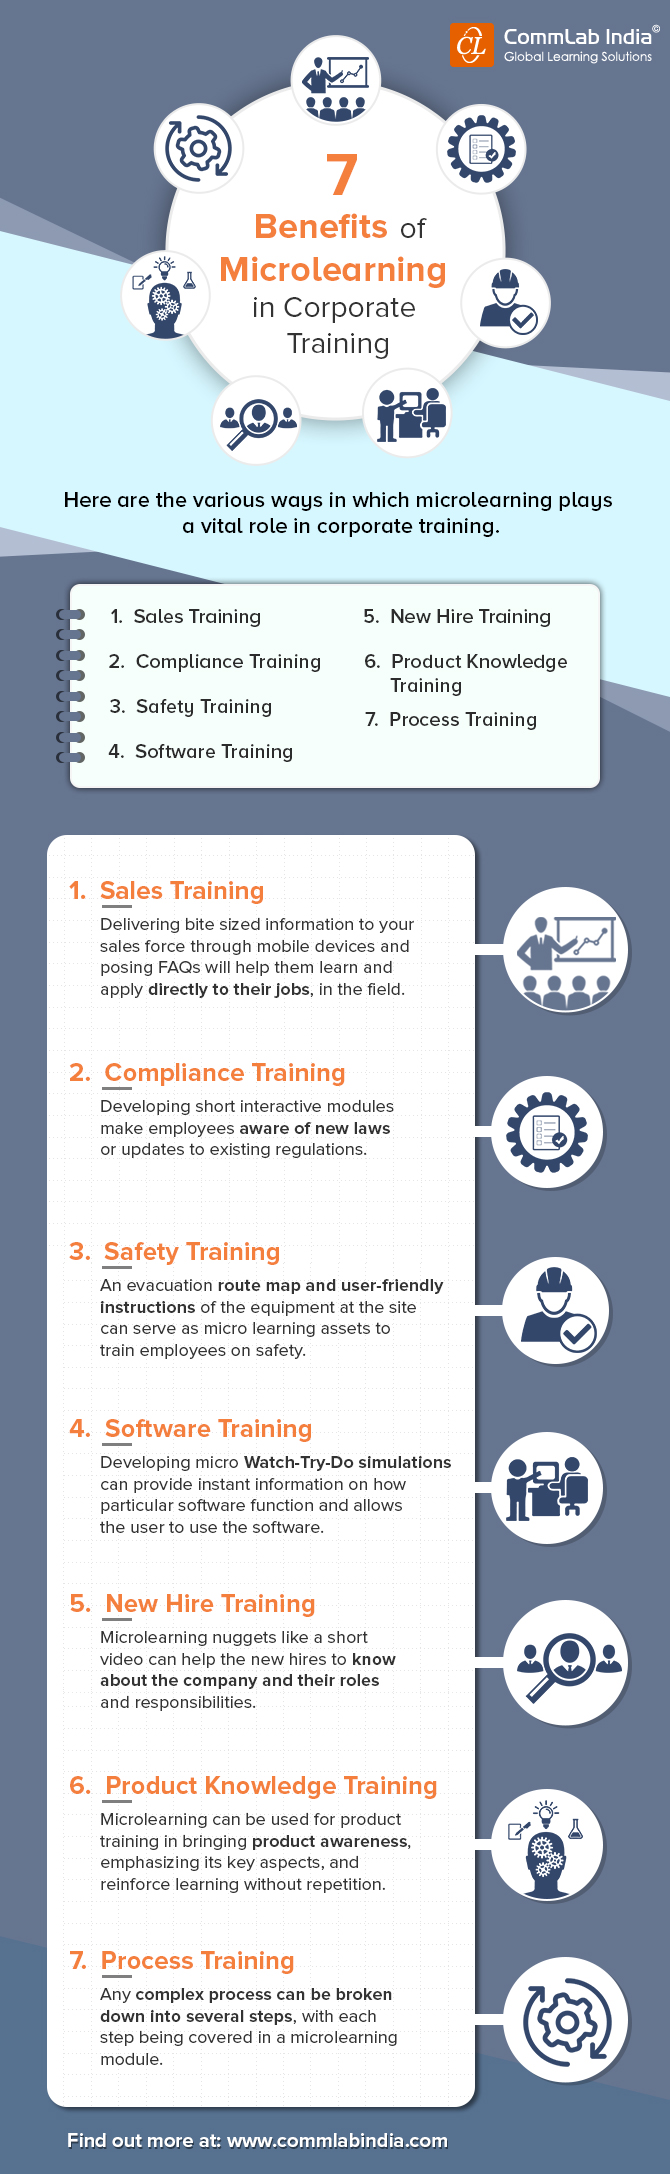 7 Benefits of Microlearning in Corporate Training [Infographic]